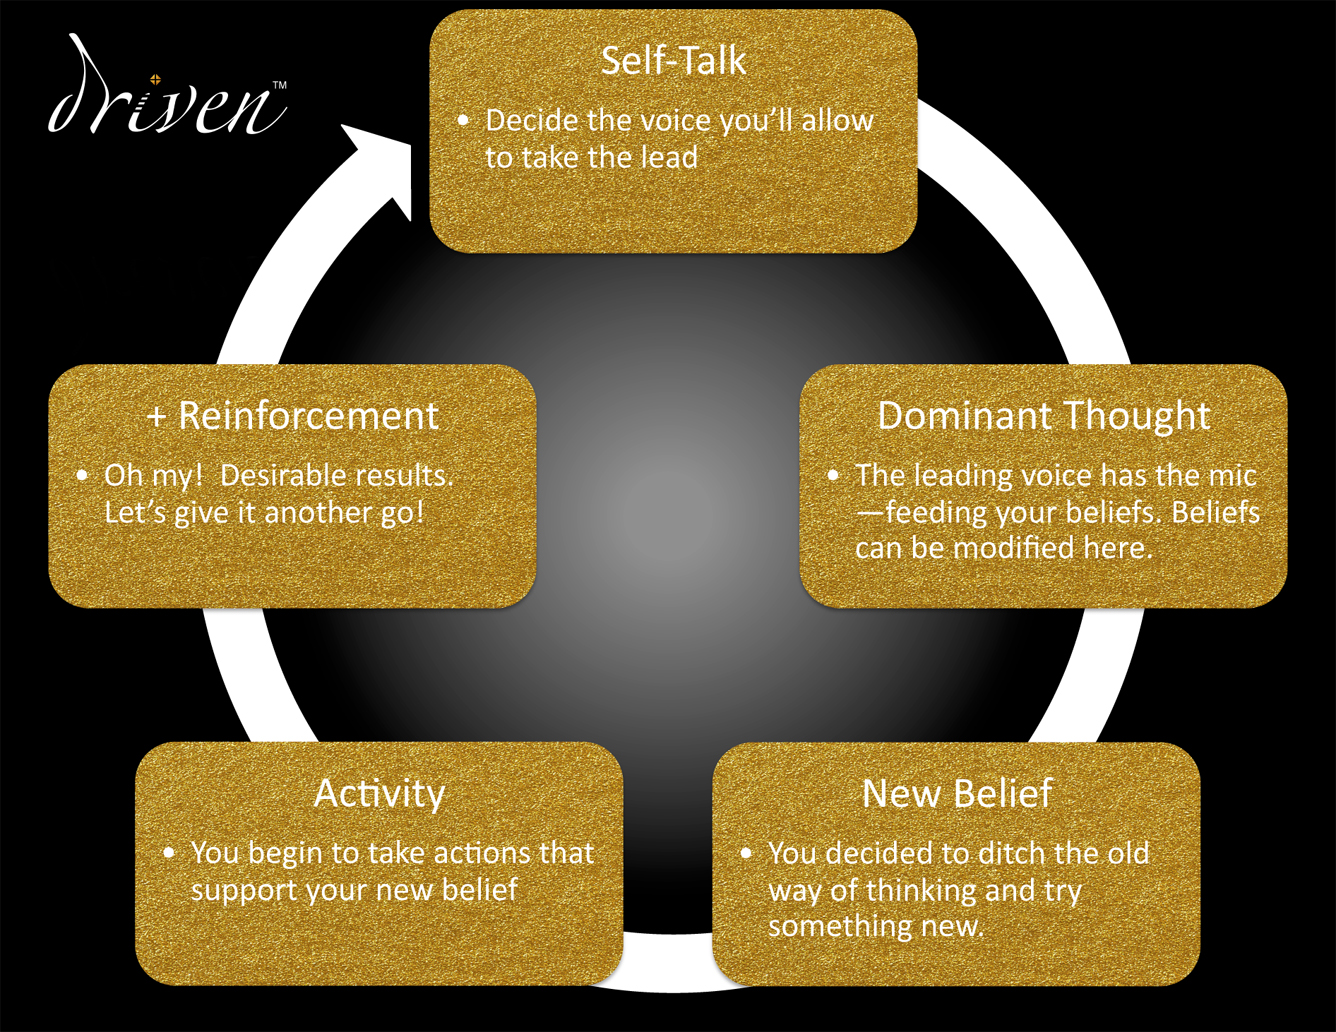 The self-talk cycle depicted in a quick reference tool.